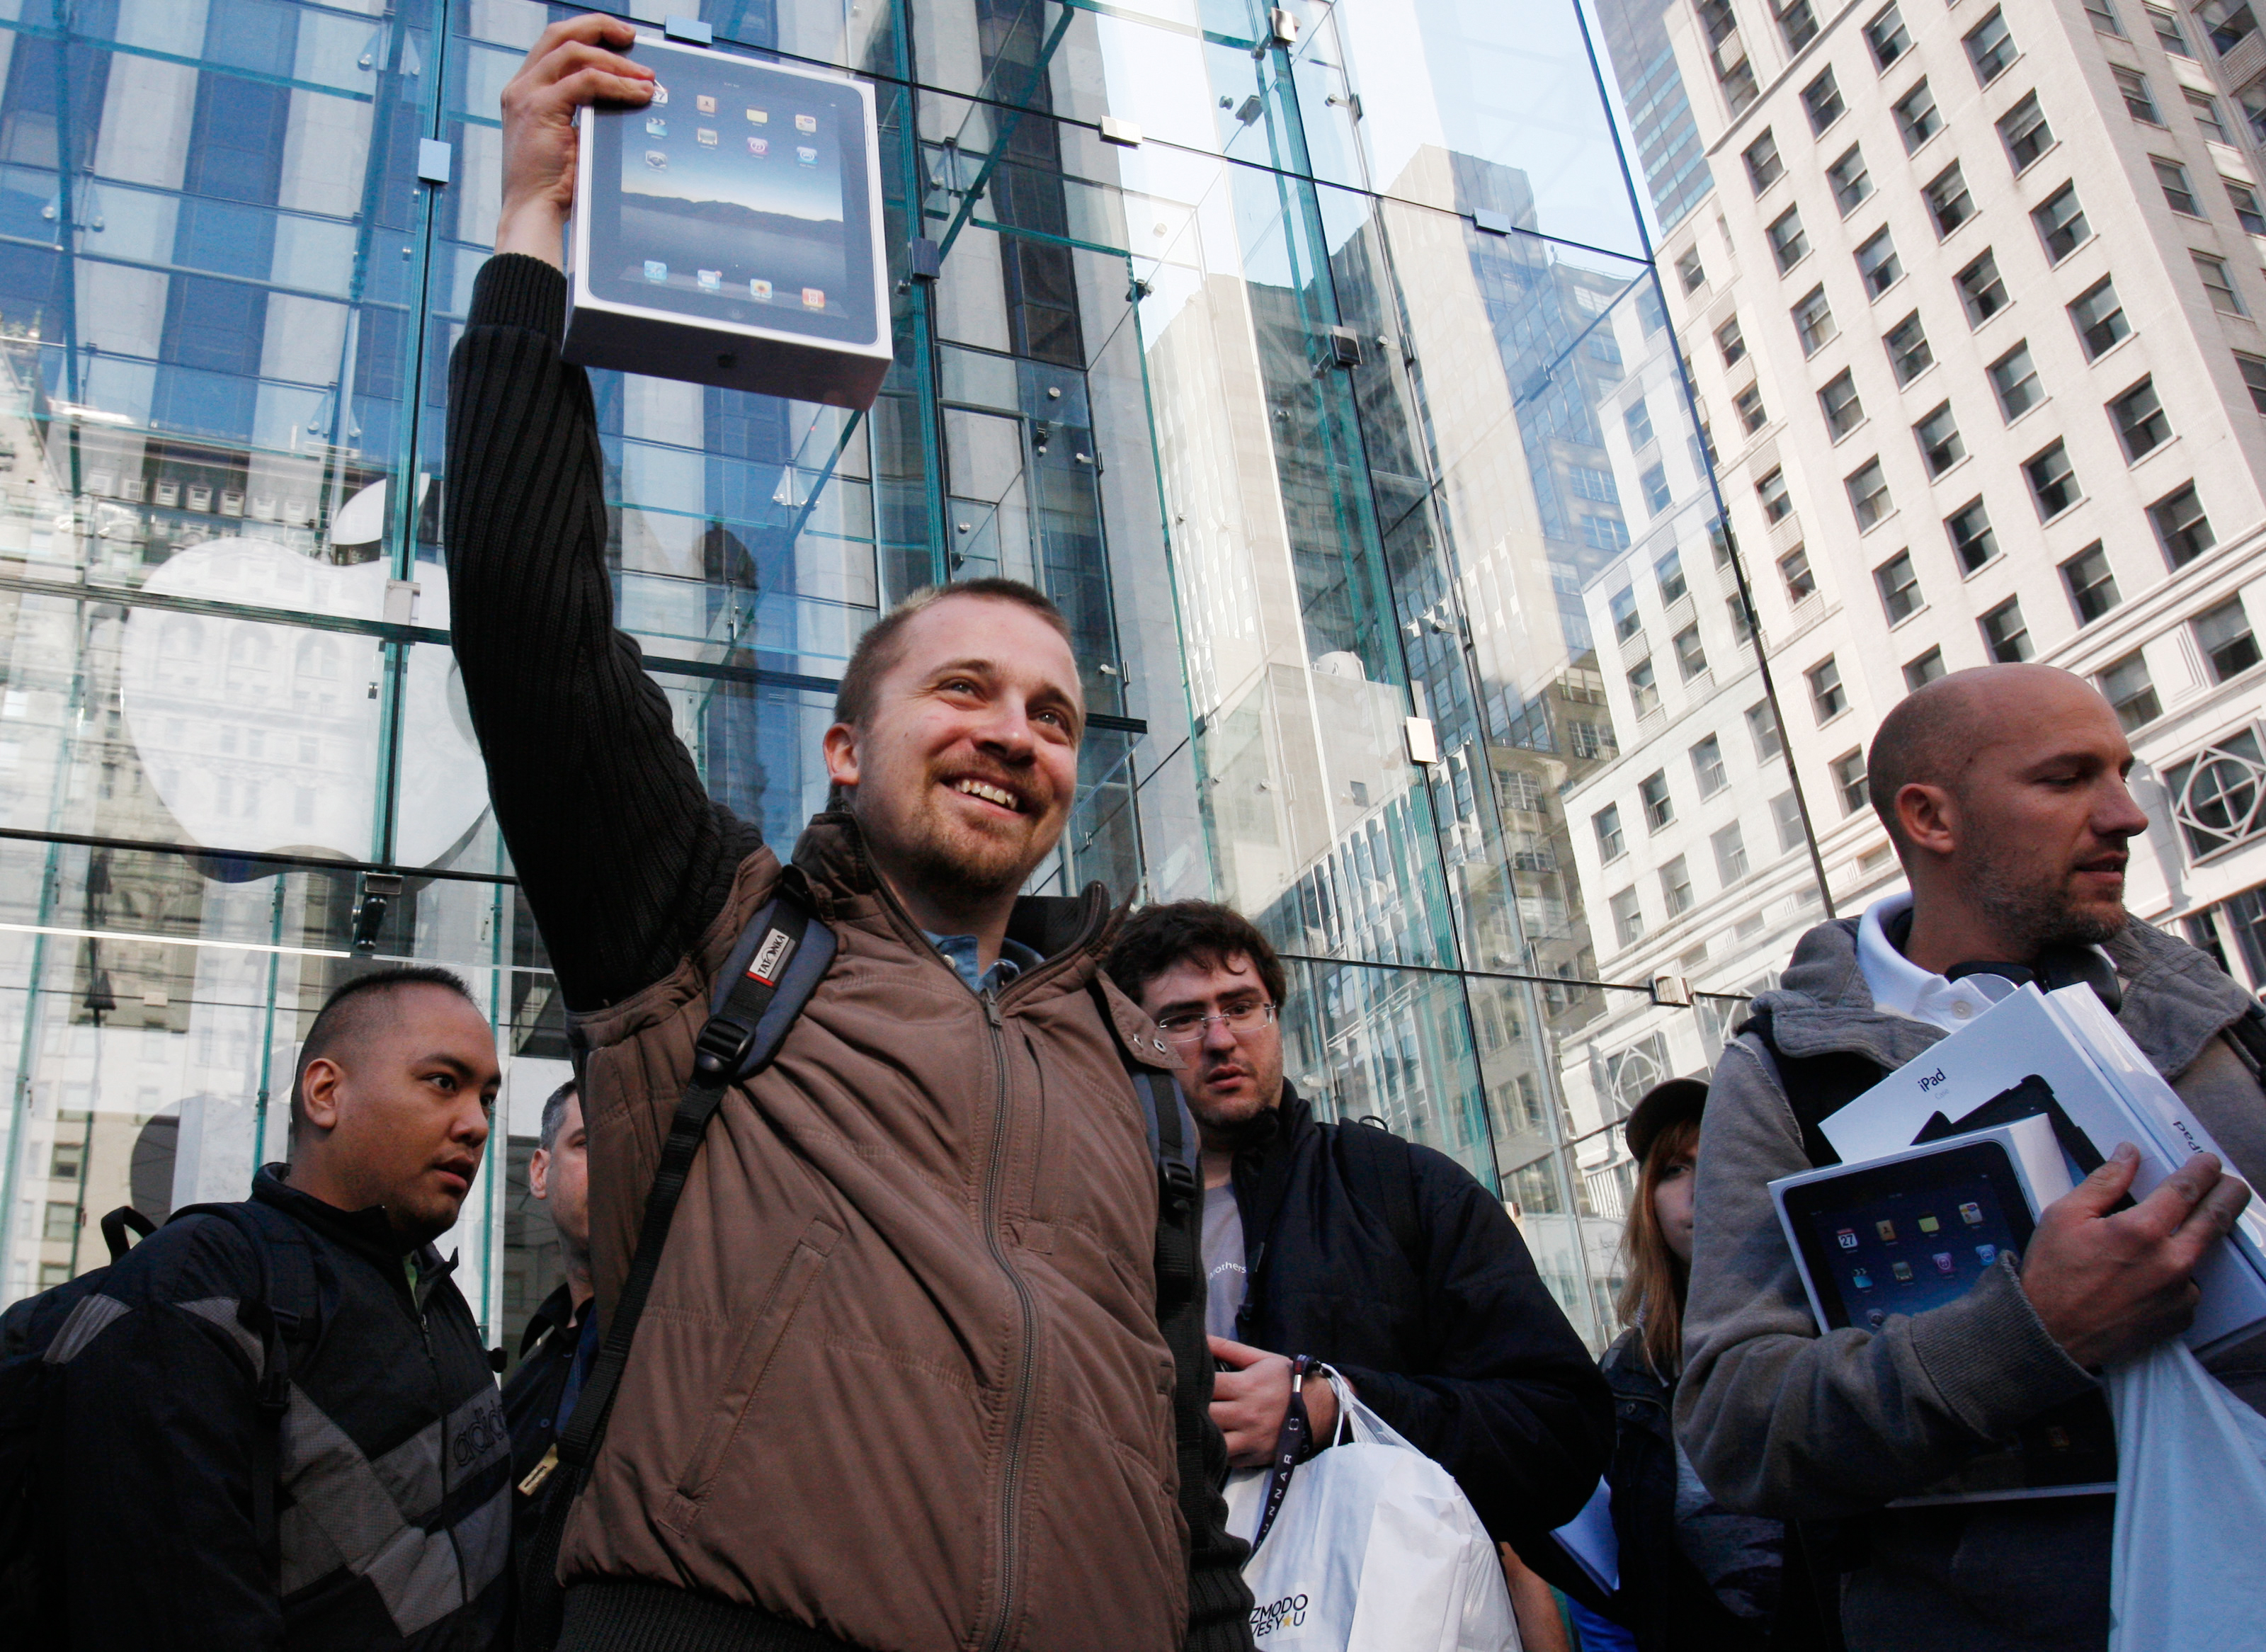 A customer lifts his iPad over his head after leaving the iPad launch at the Apple Store in New York.